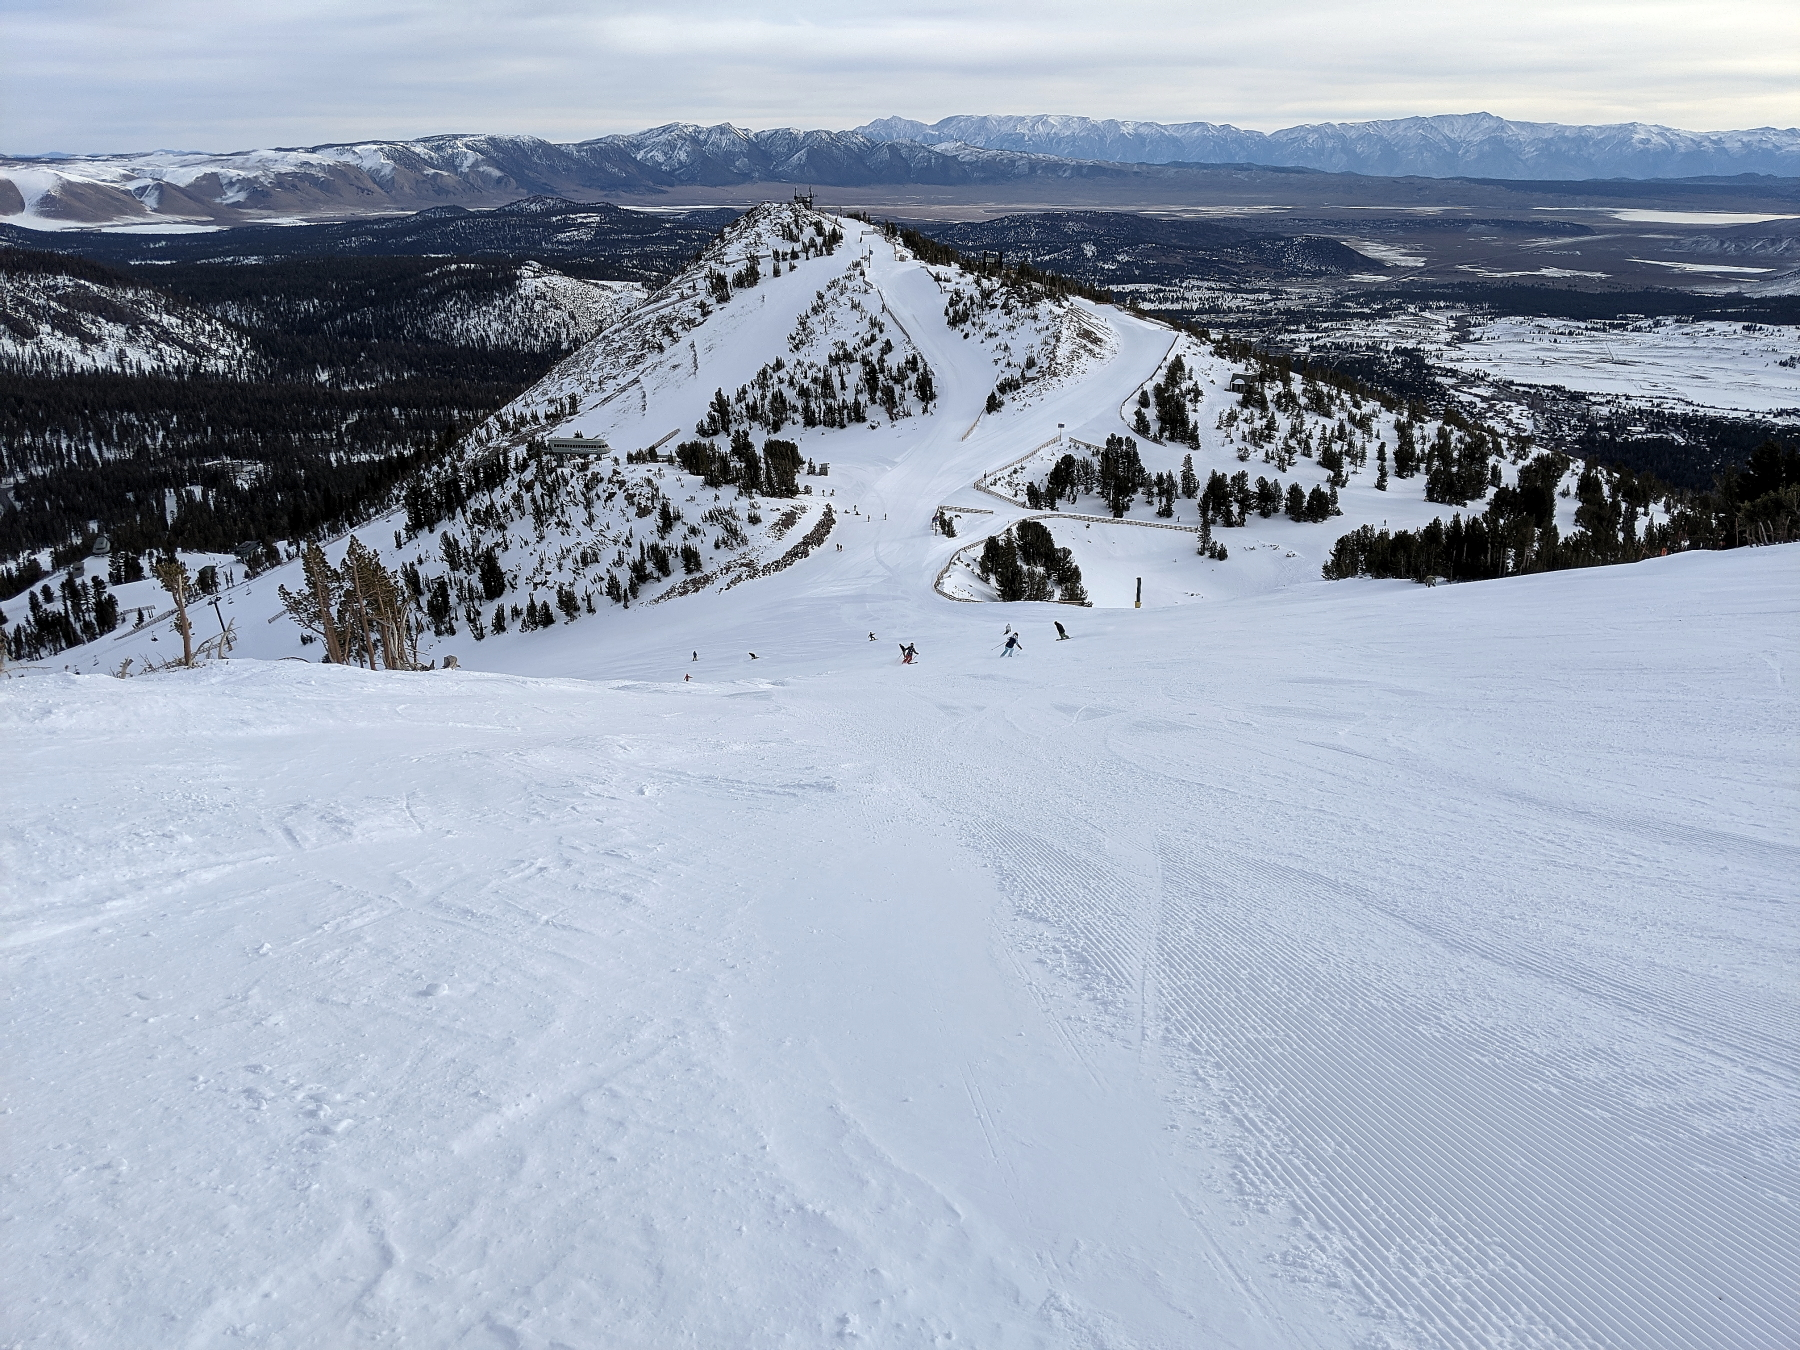 1-5-2020 Mammoth Mountain Snow Report from the Snowman